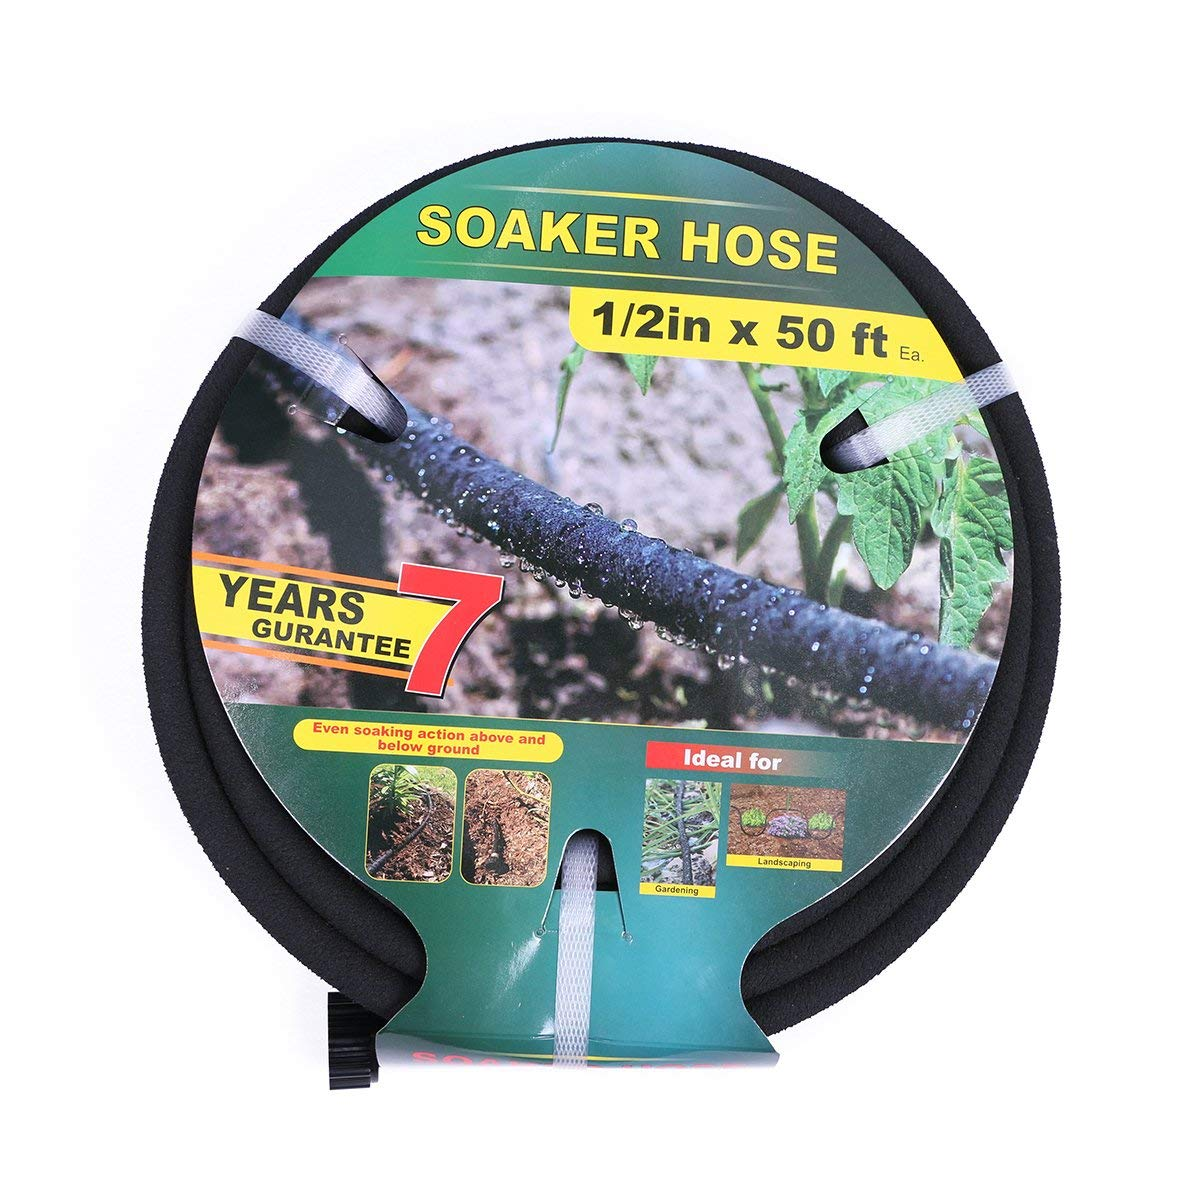 Taisia 1/2 inch Soaker Hose 50ft Lead Free Saves 70% Water Perfect Delivery of Water Great for Garden Flower Bed (1-2-50FT-P)